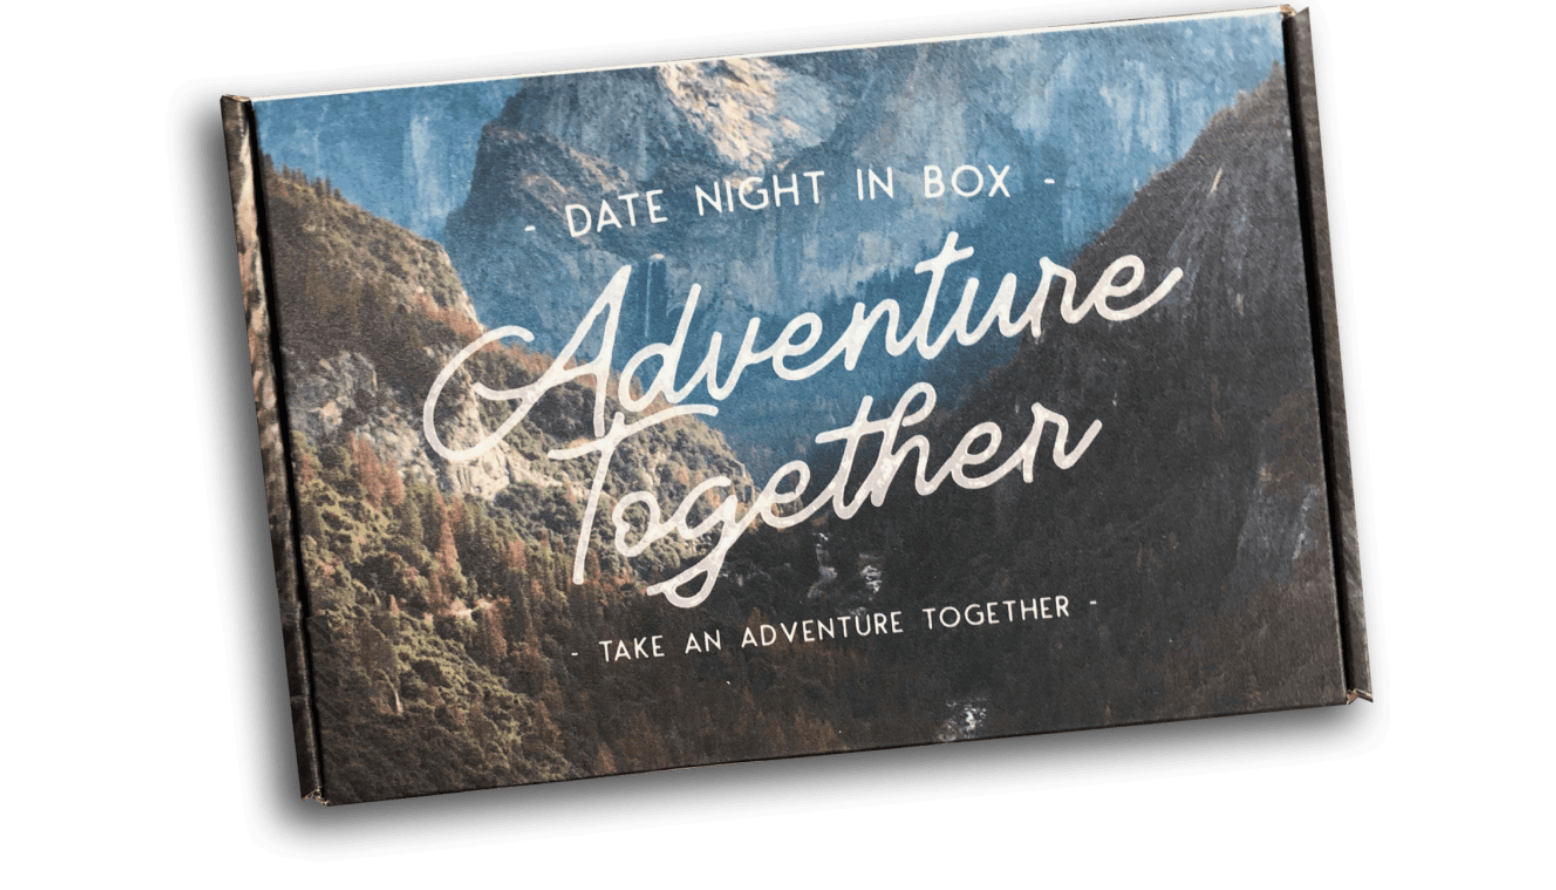 """Night In Boxes - How cool would it be to have a date that you don't have to plan yourselves? Or a date planned for you, but you never have to leave the house? We get it, life gets crazy, and sometimes it's hard to find time to get some alone time and invest in your relationship. Well, Date Night In Box has you covered. These boxes contain everything you need for a great date night in. It even has a dinner menu with a full printable grocery shopping list! No worrying about deciding whats for dinner. It's a subscription based service, but you can purchase one or a whole year. They're very flexible. Or you can gift it to a loved one. Do you have kids? No worries! Date Night In has Kids Night In Boxes. These Kids Night in Boxes """"include life lessons inspired by REAL LIFE mom adventures, a get up and move around activity, a healthy snack and more fun, all routed in an educational focus to help make memories that will last a lifetime."""" Have your night totally planned for you, and enjoy the surprises that come with it, with these Night In Boxes."""